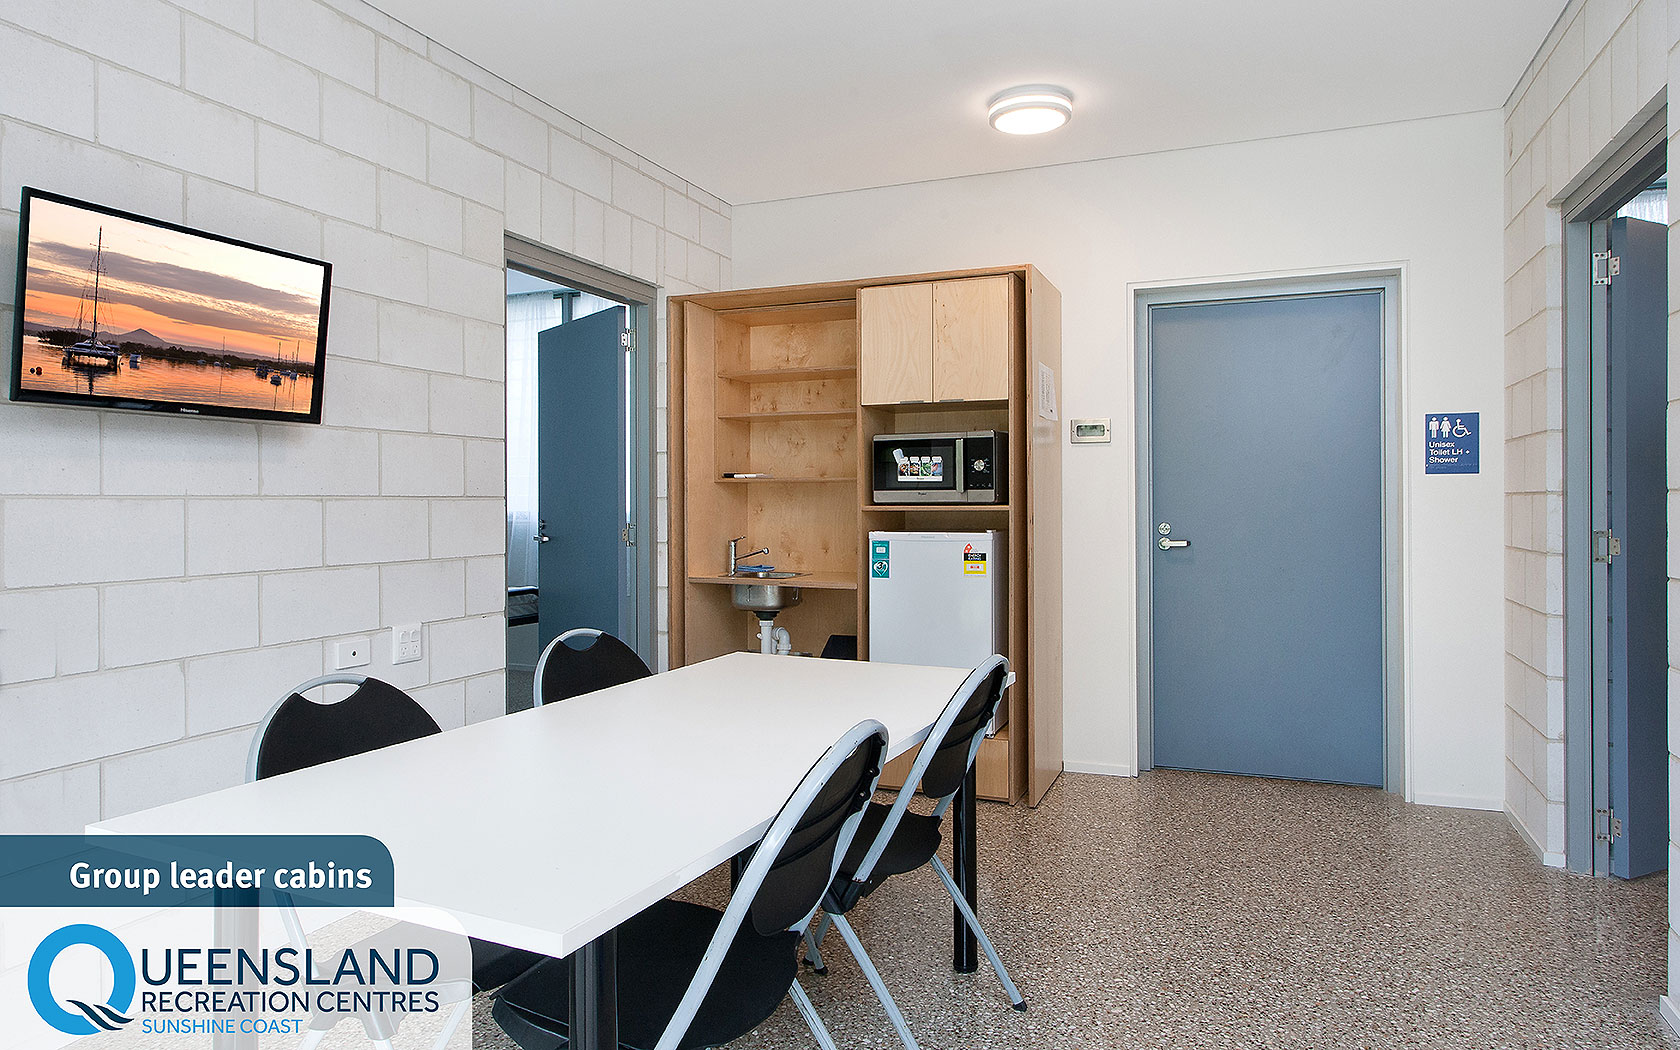 Group leader cabin interior with table, chairs, kitchenette and adjoining bedrooms at the Sunshine Coast Recreation Centre